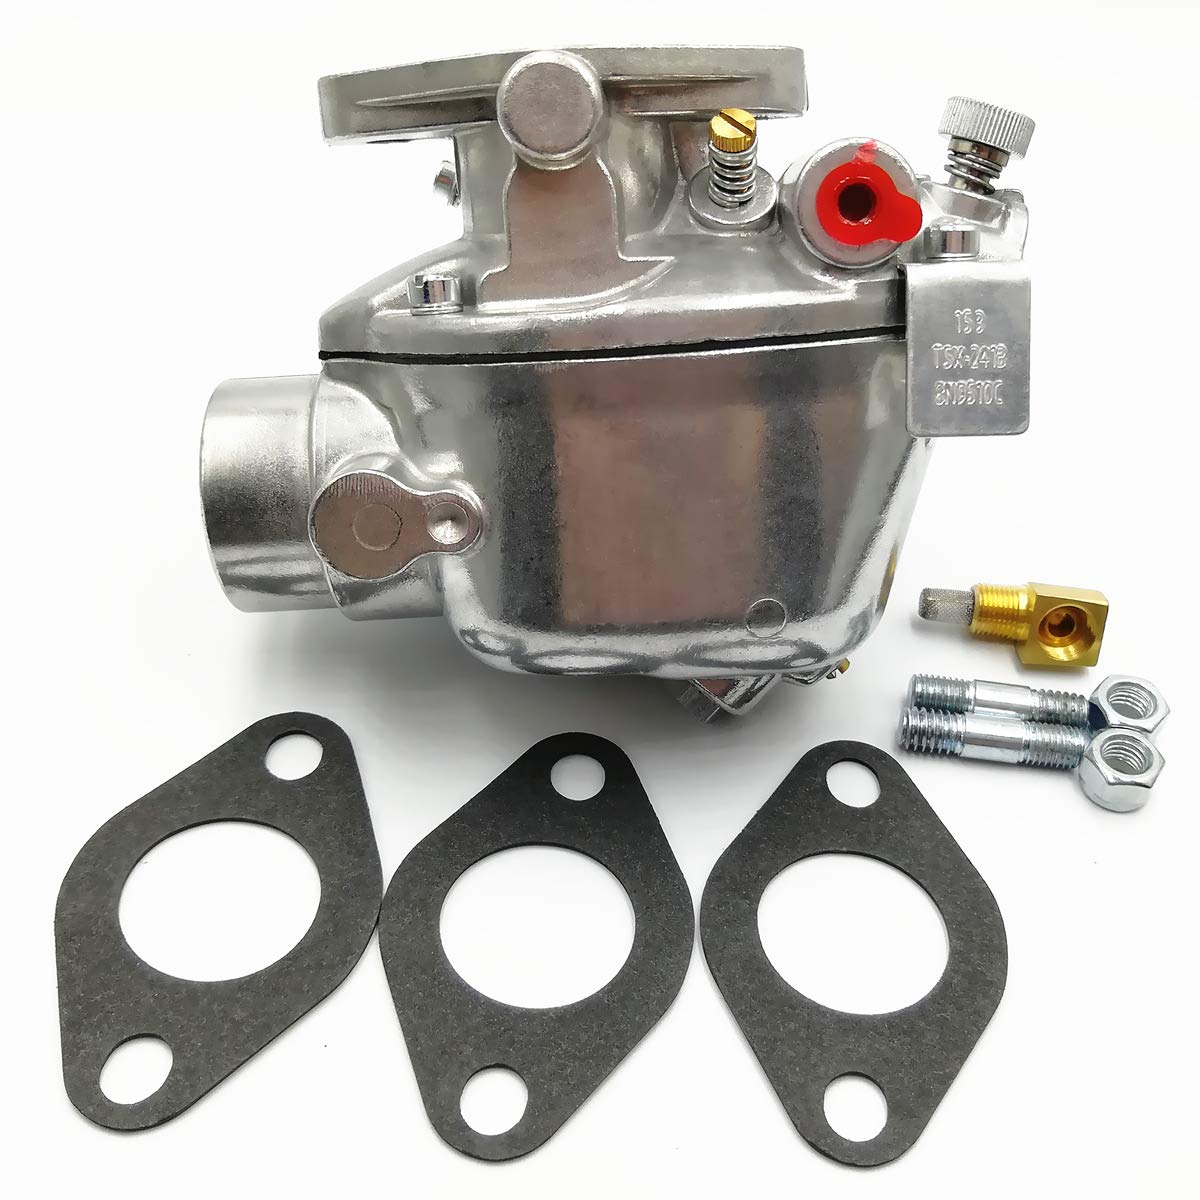 Autu Parts 8N9510C Carburetor For Marvel Schebler 8N9510C-HD Carb for Ford Tractor 2N 8N 9N for Heavy Duty TSX33